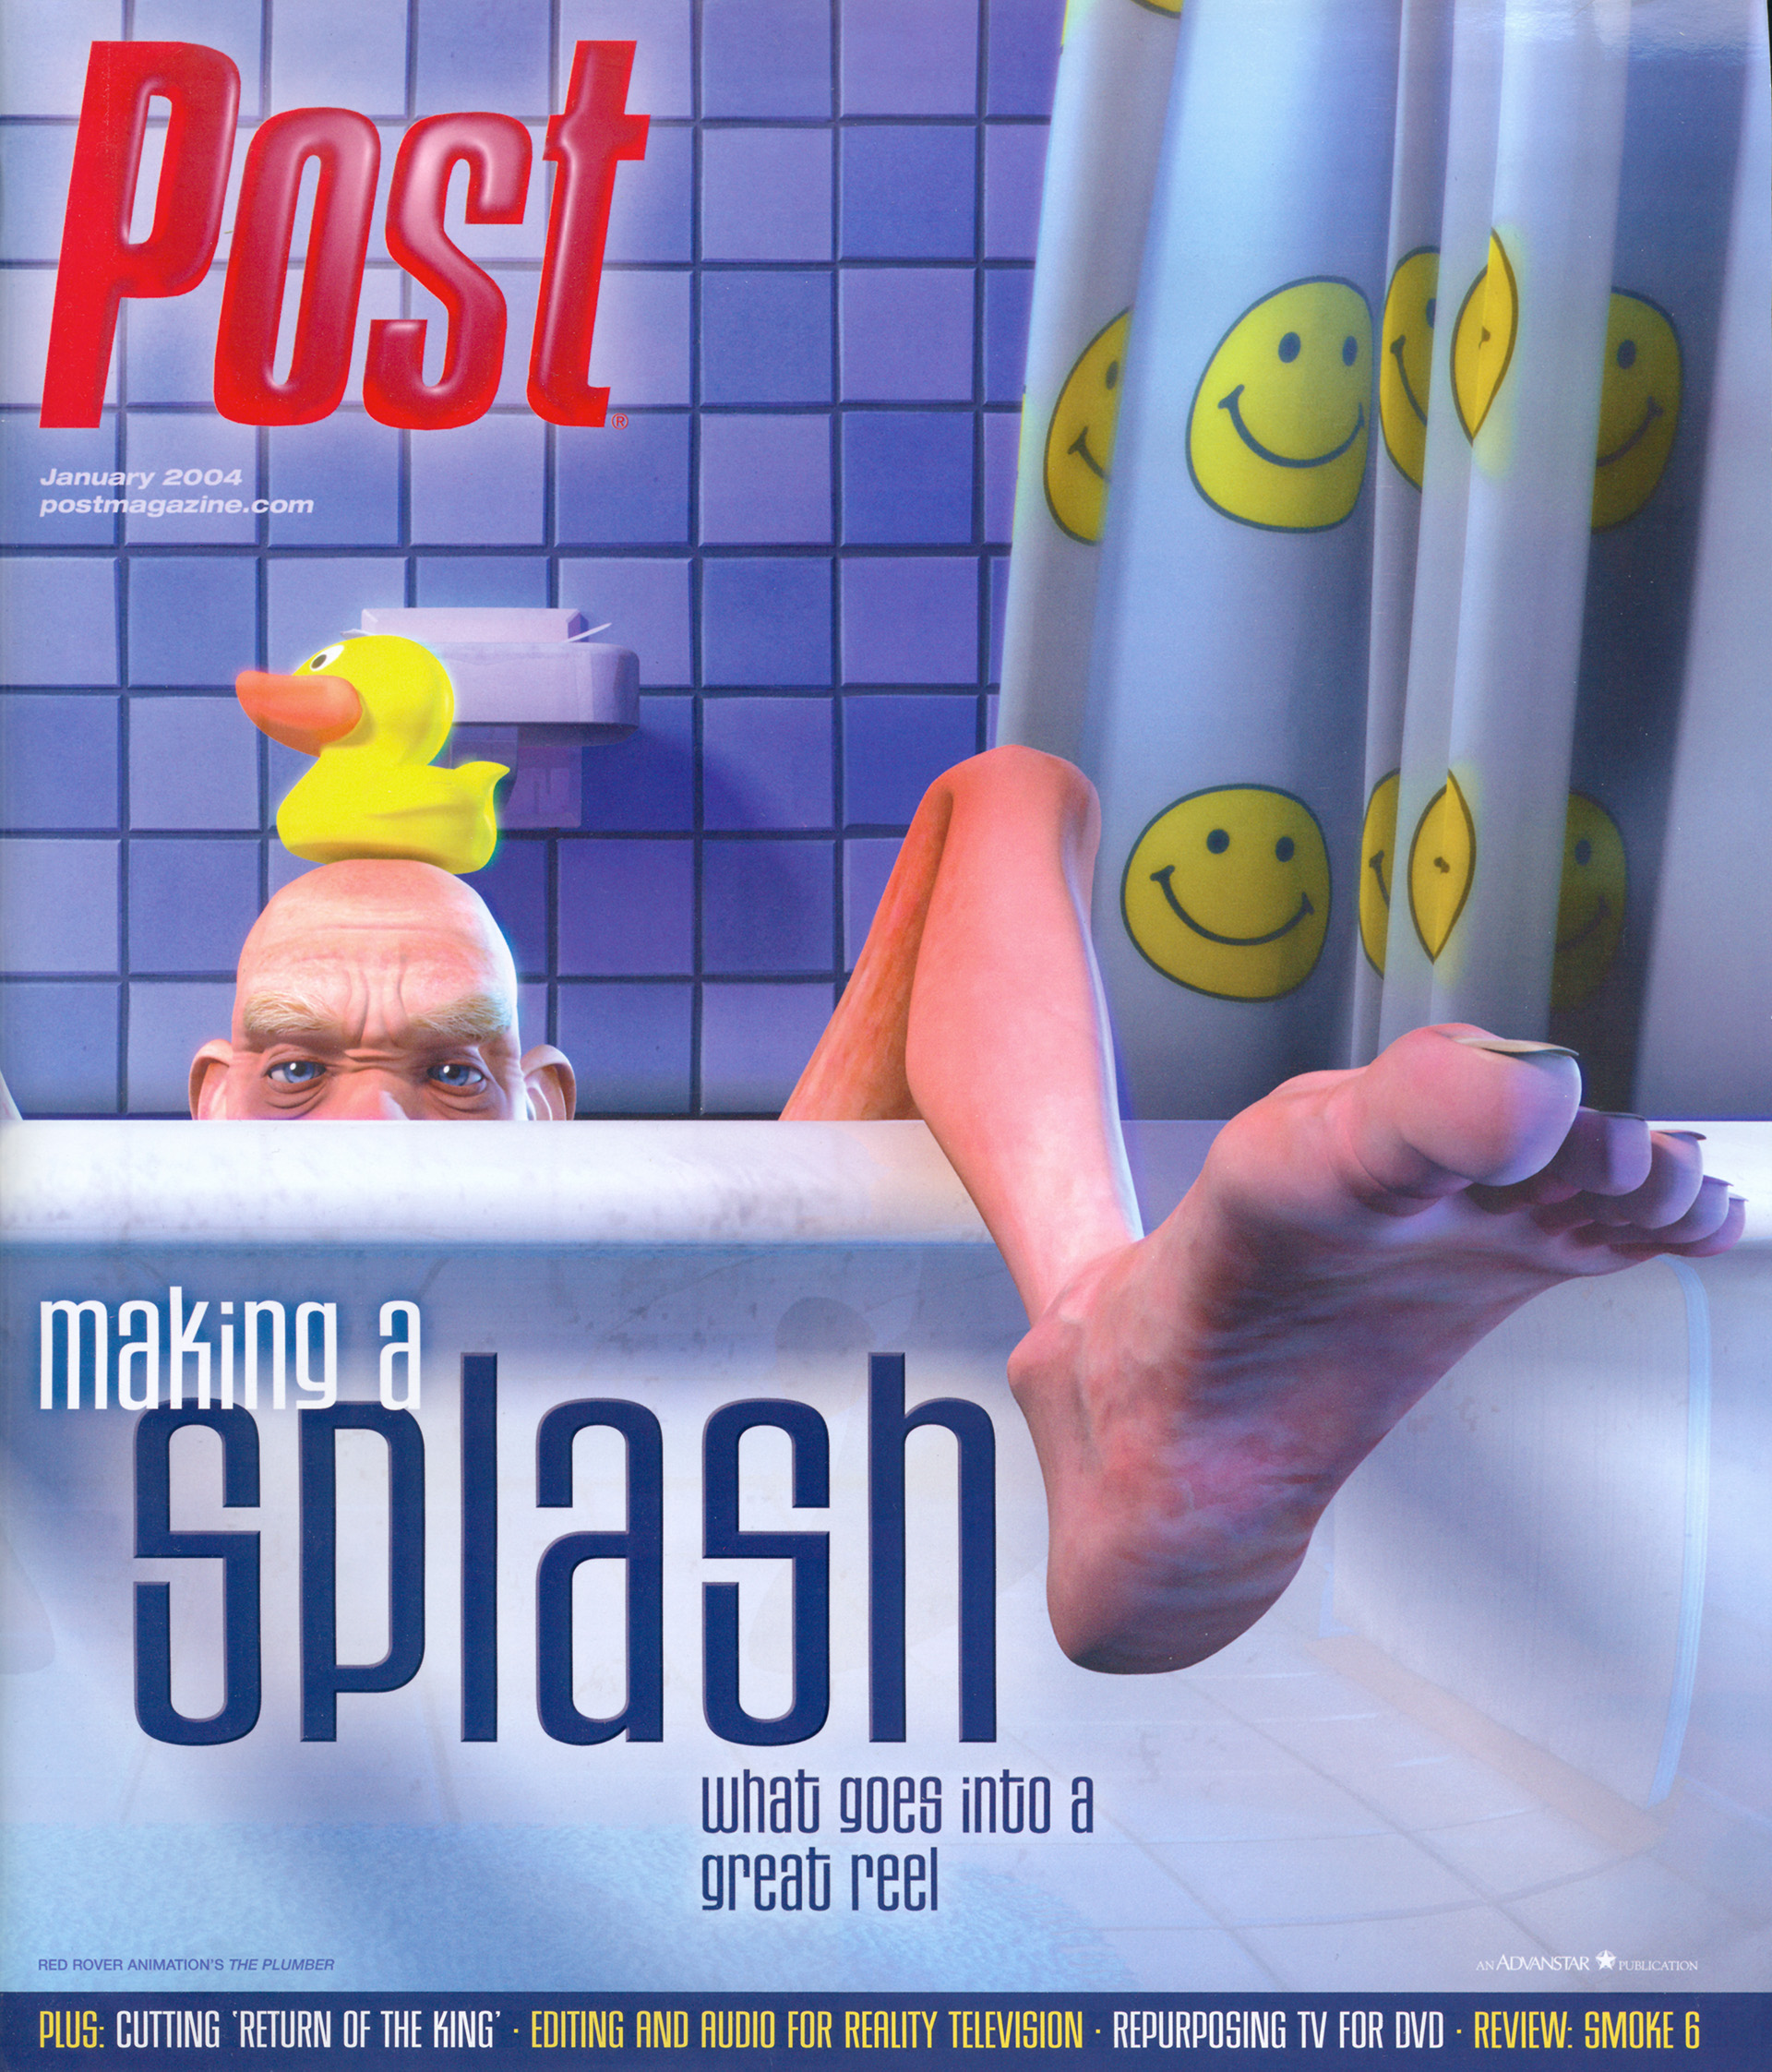 plumber_post_magazine_cover_image01